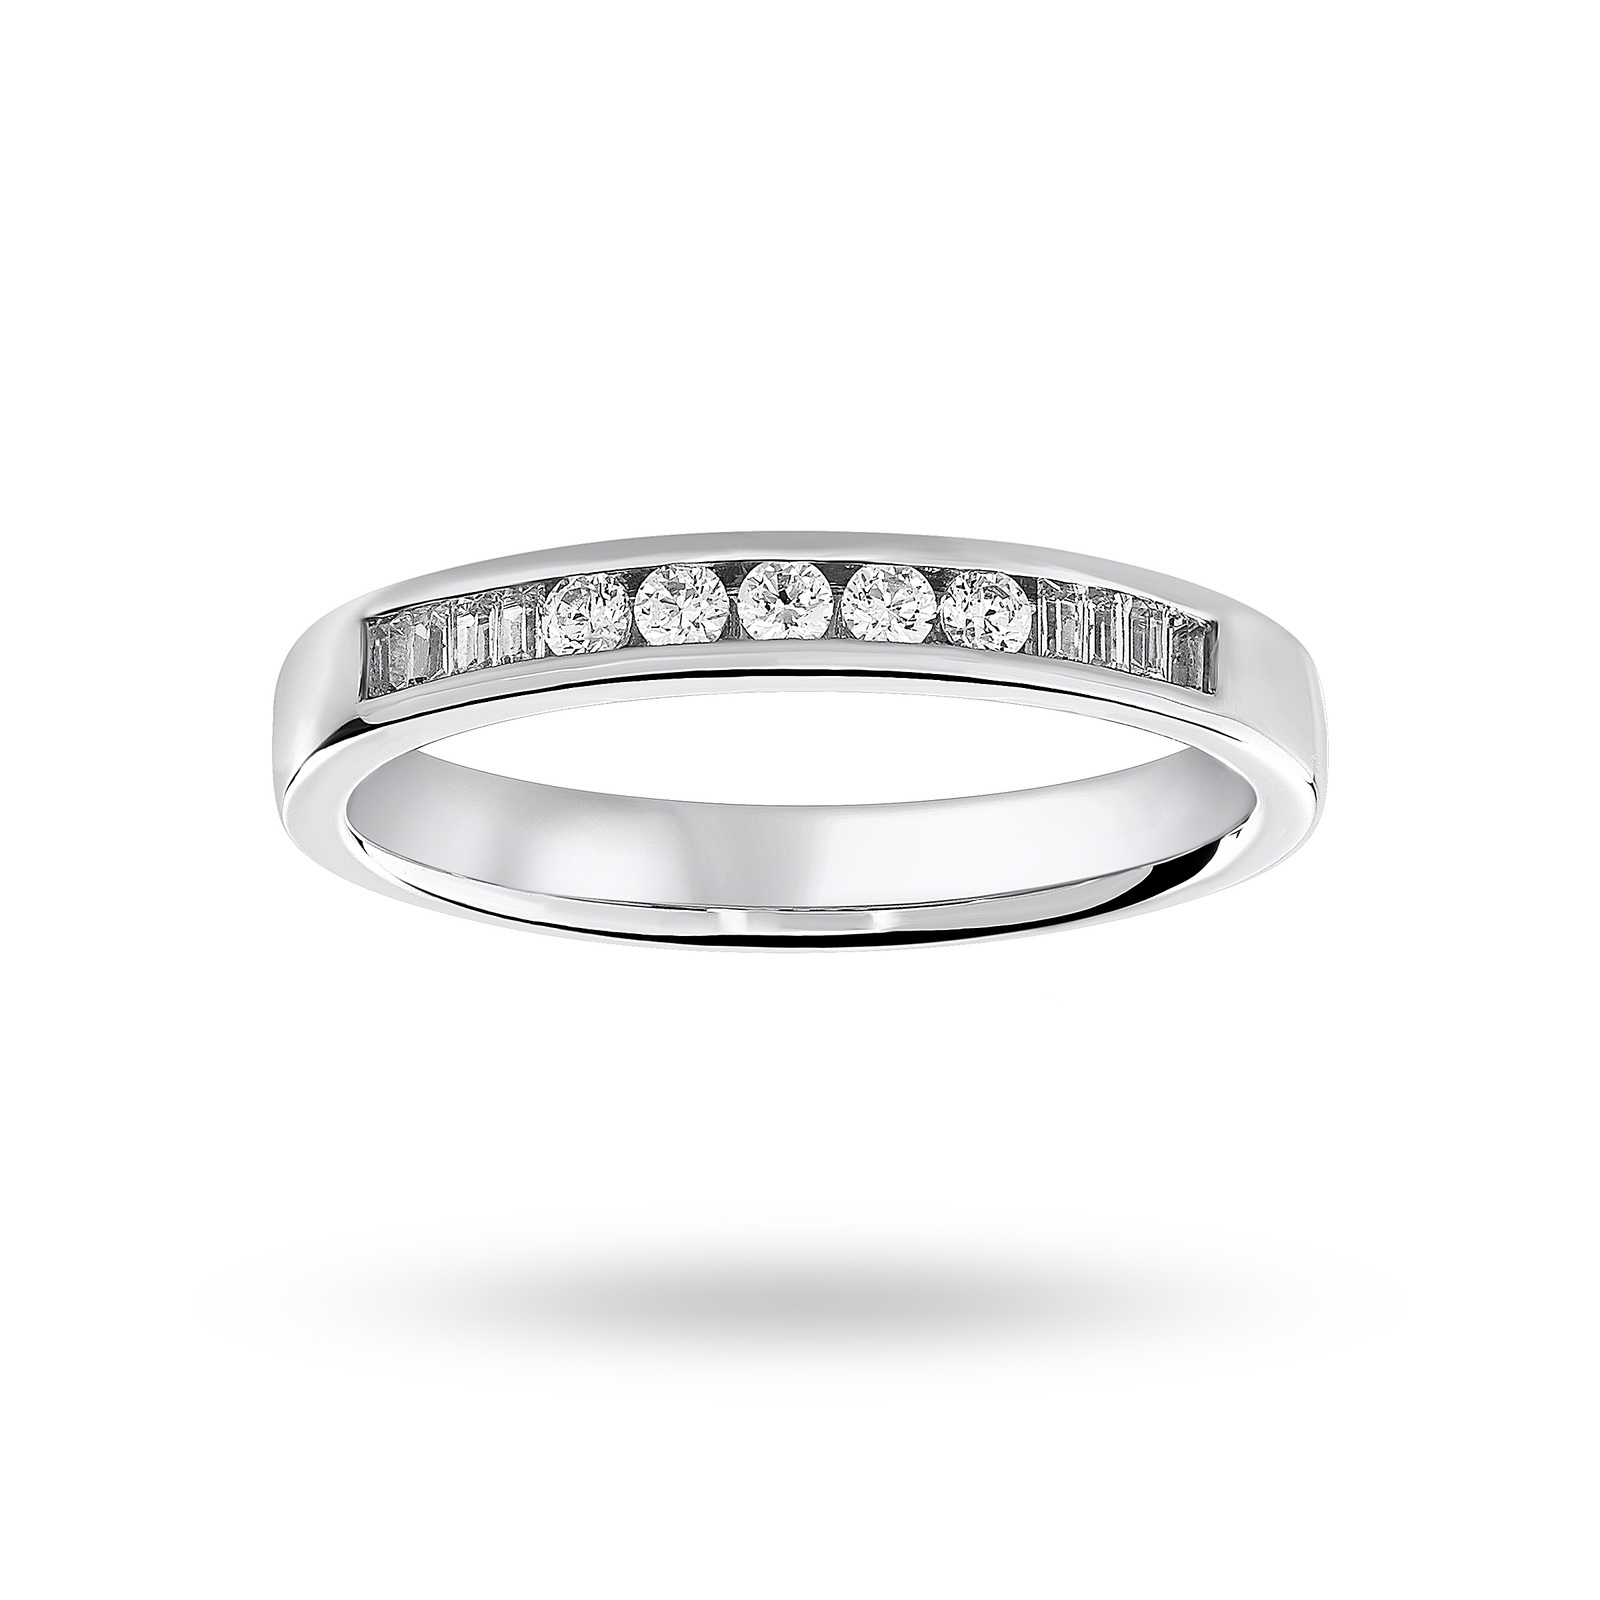 18 Carat White Gold 0.20 Carat Brilliant Cut and Baguette Channel Set Half Eternity Ring